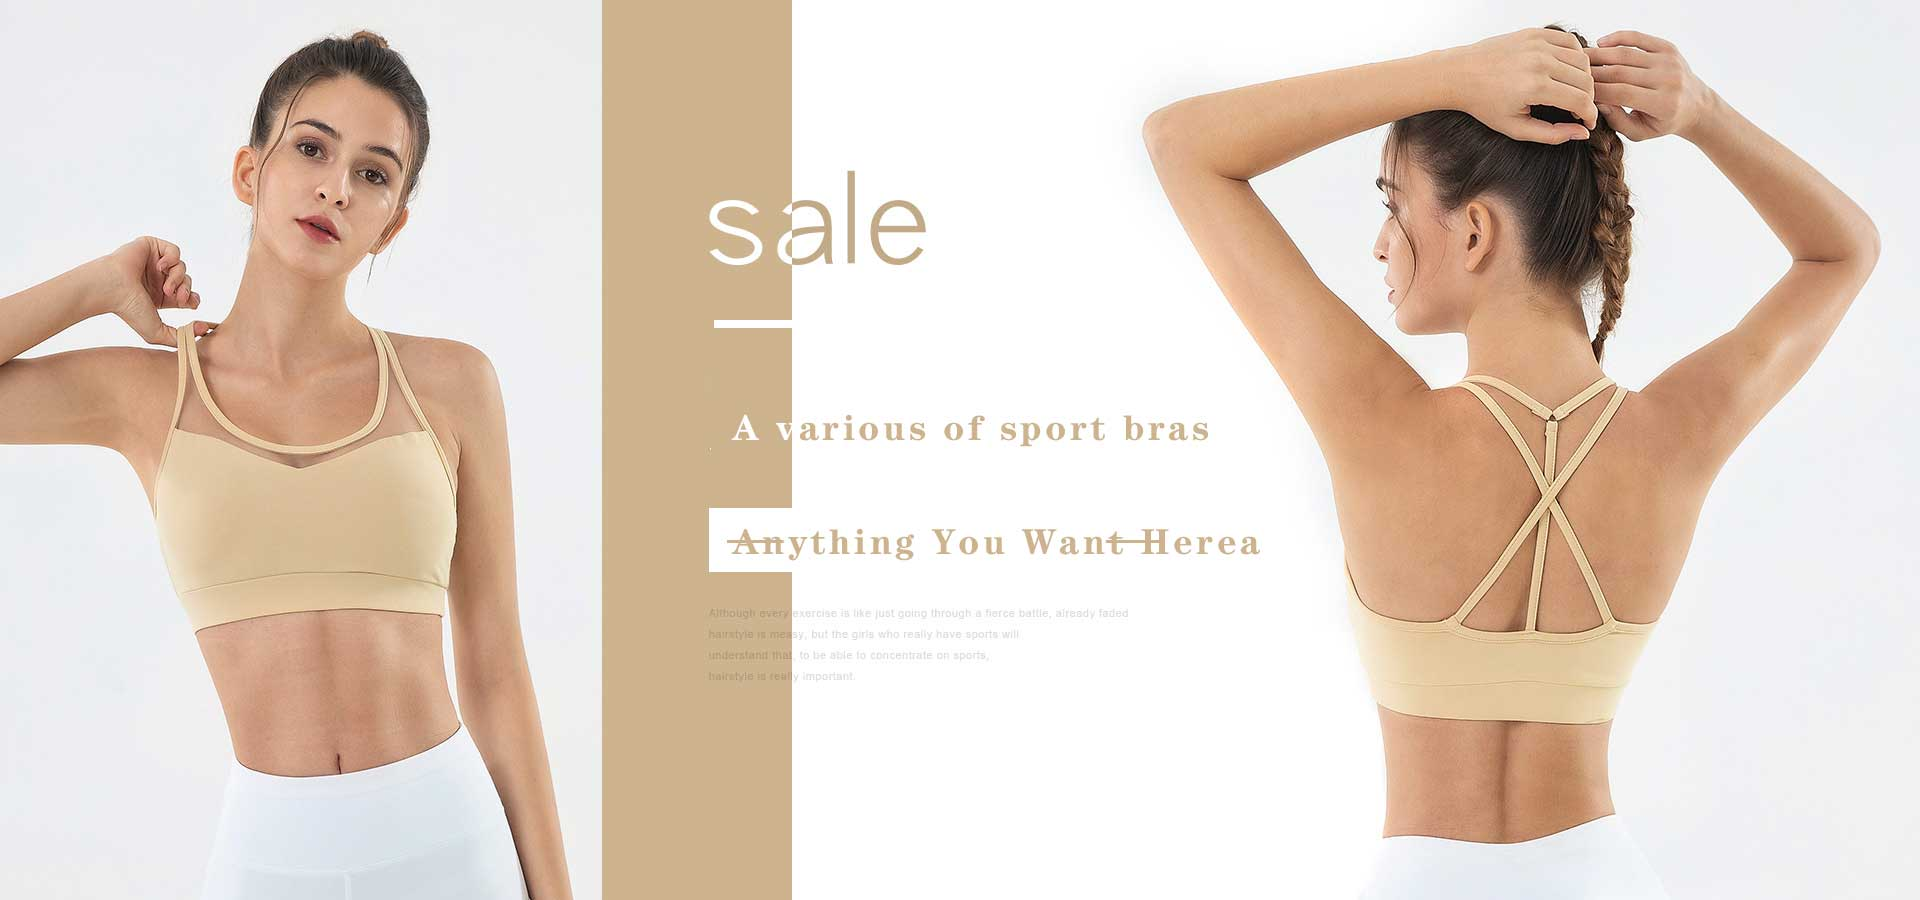 A-various-of-sports-bra-here-in-huallen-sportswear